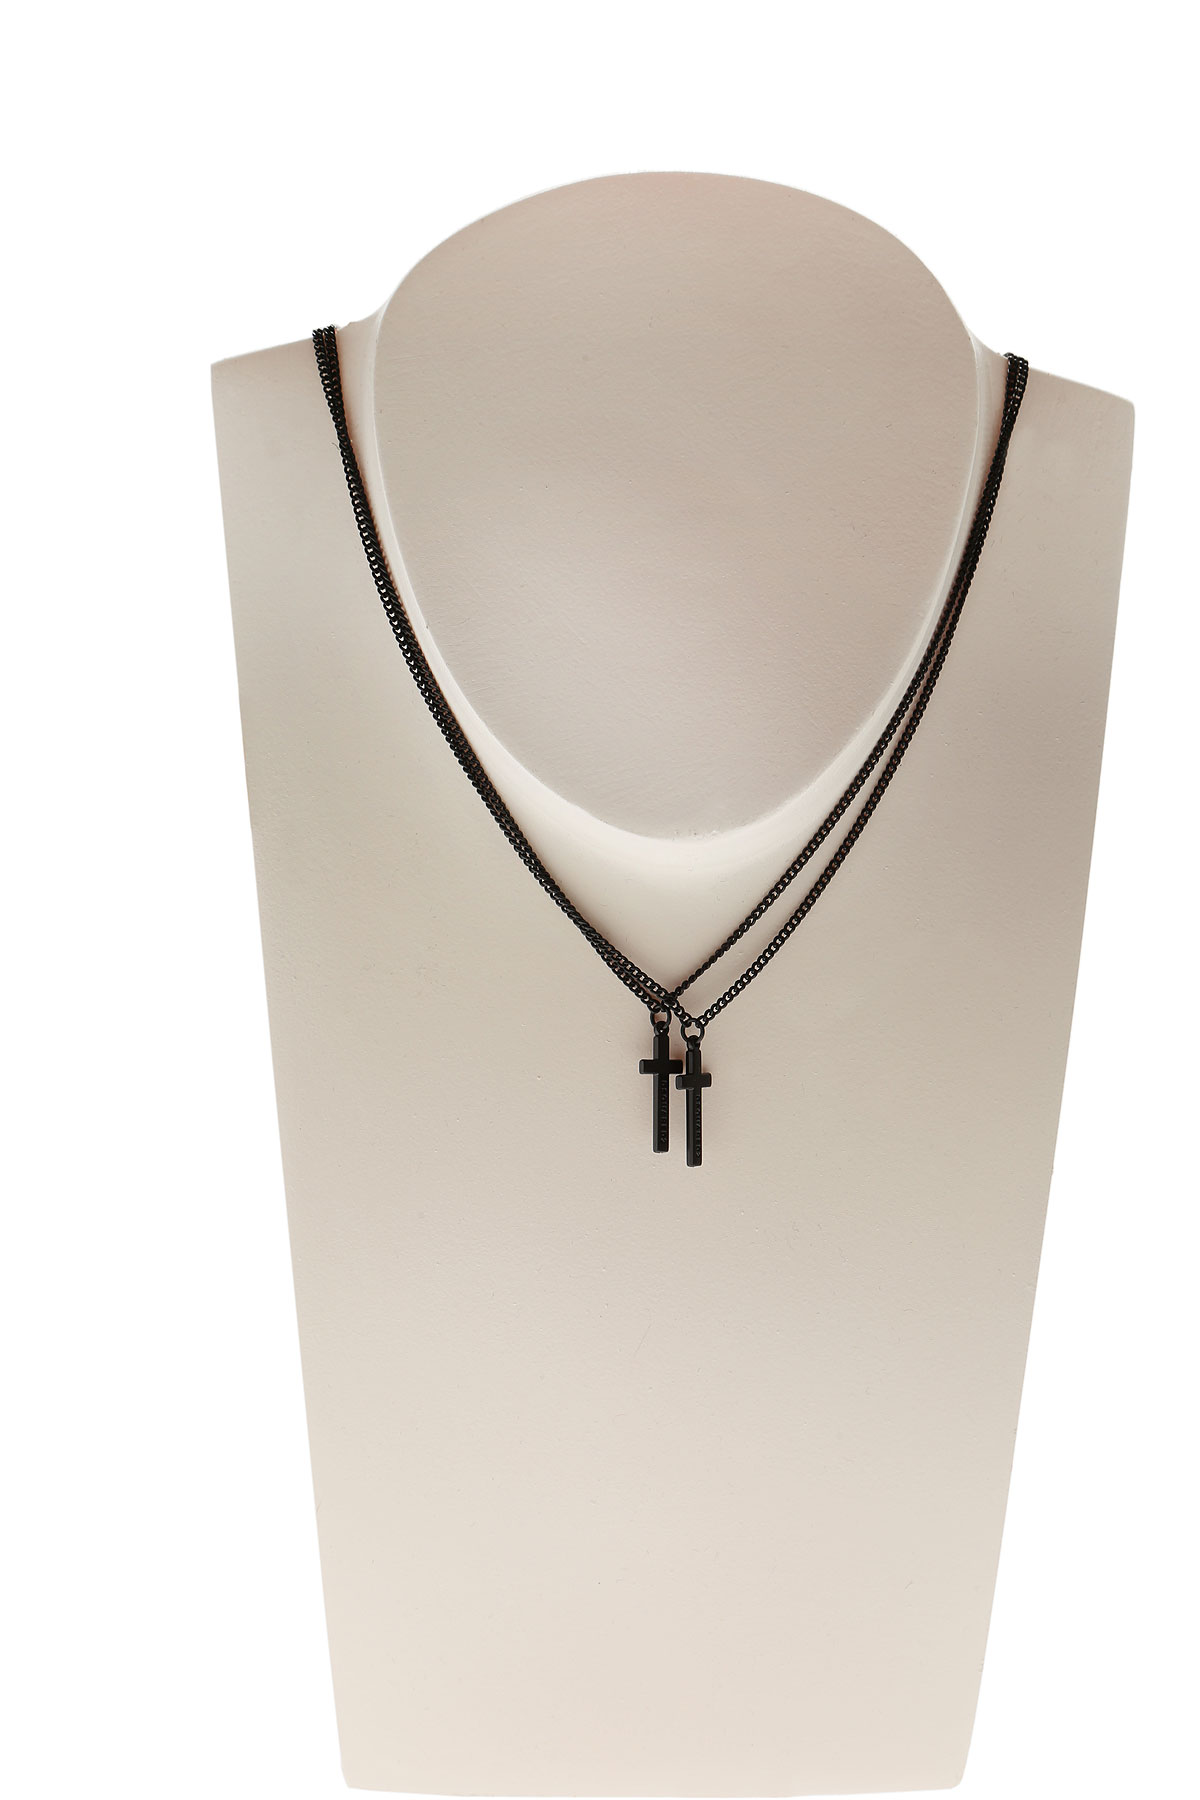 Image of Dsquared2 Necklaces On Sale in Outlet, Black, Brass, 2017